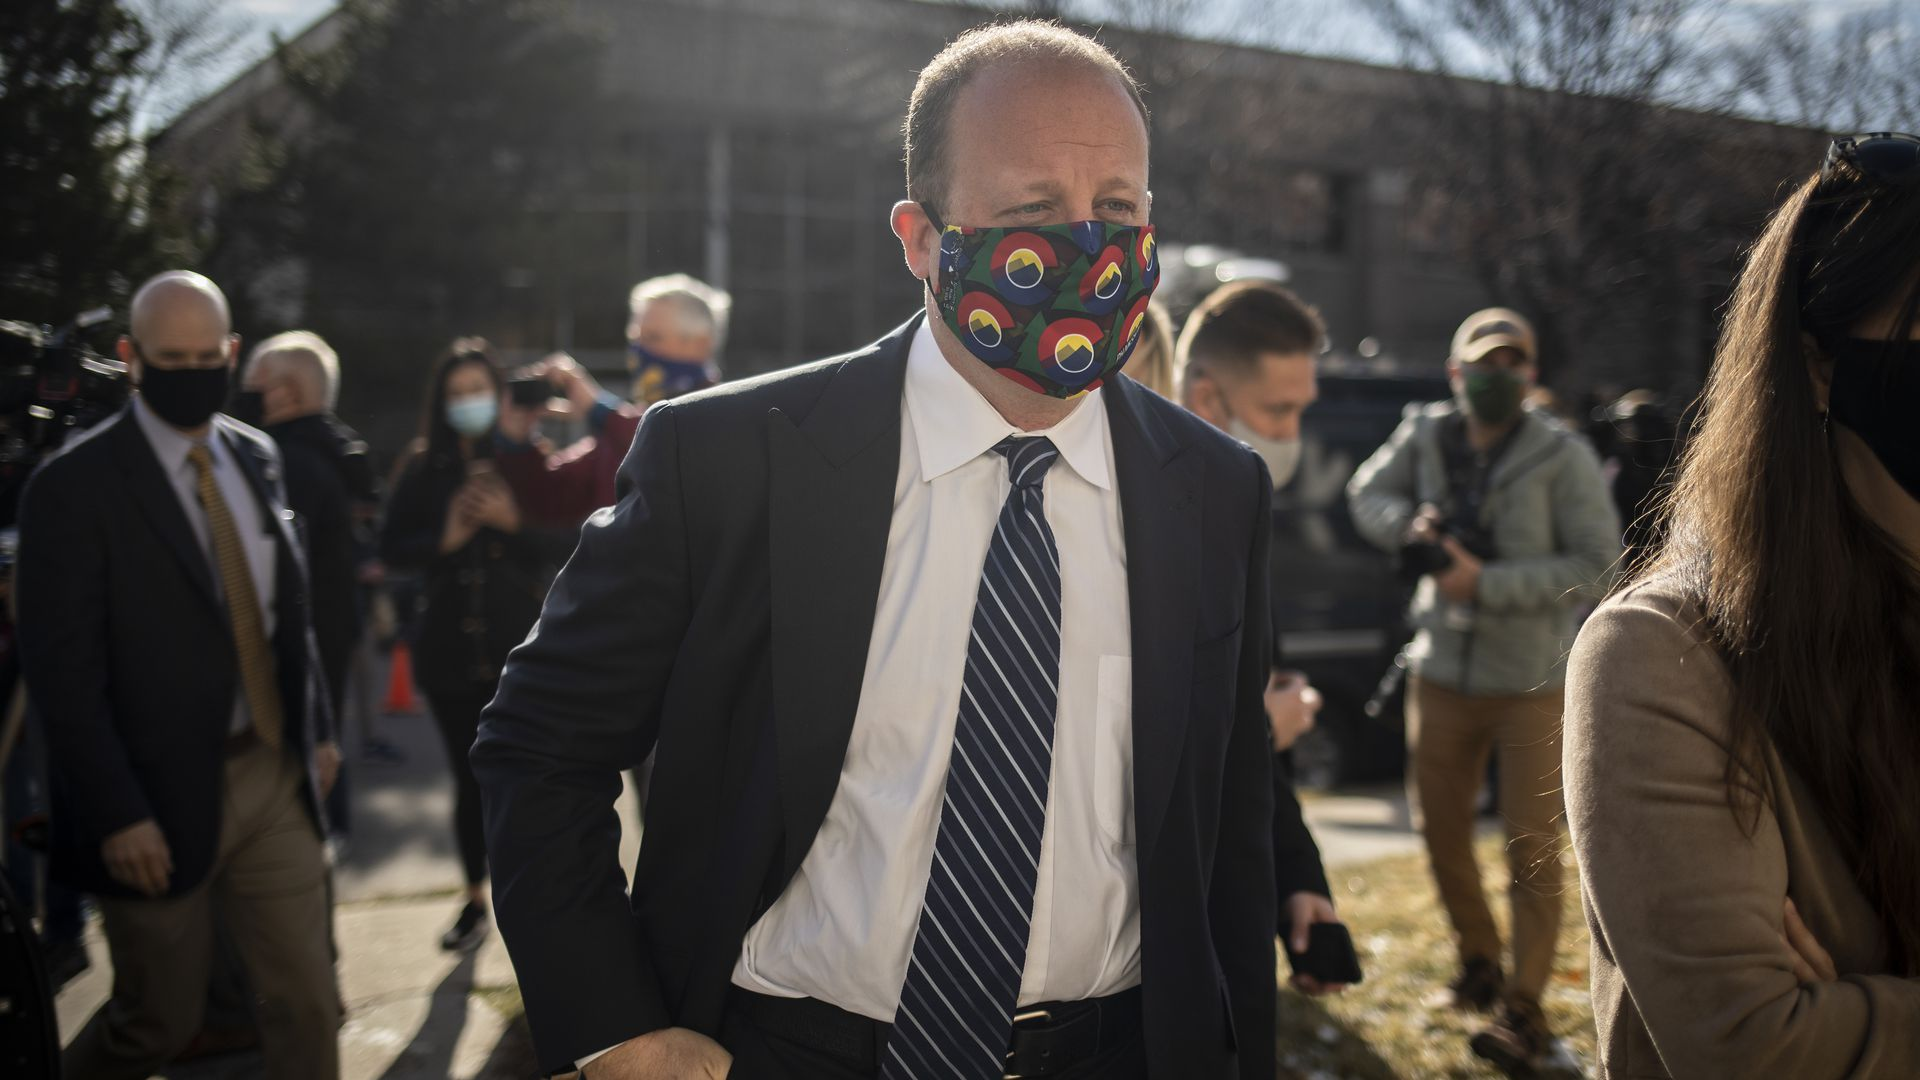 Colorado Governor Jared Polis leaves a press conference the morning after a gunman opened fire at a King Sooper's grocery store on March 23, 2021 in Boulder, Colorado.